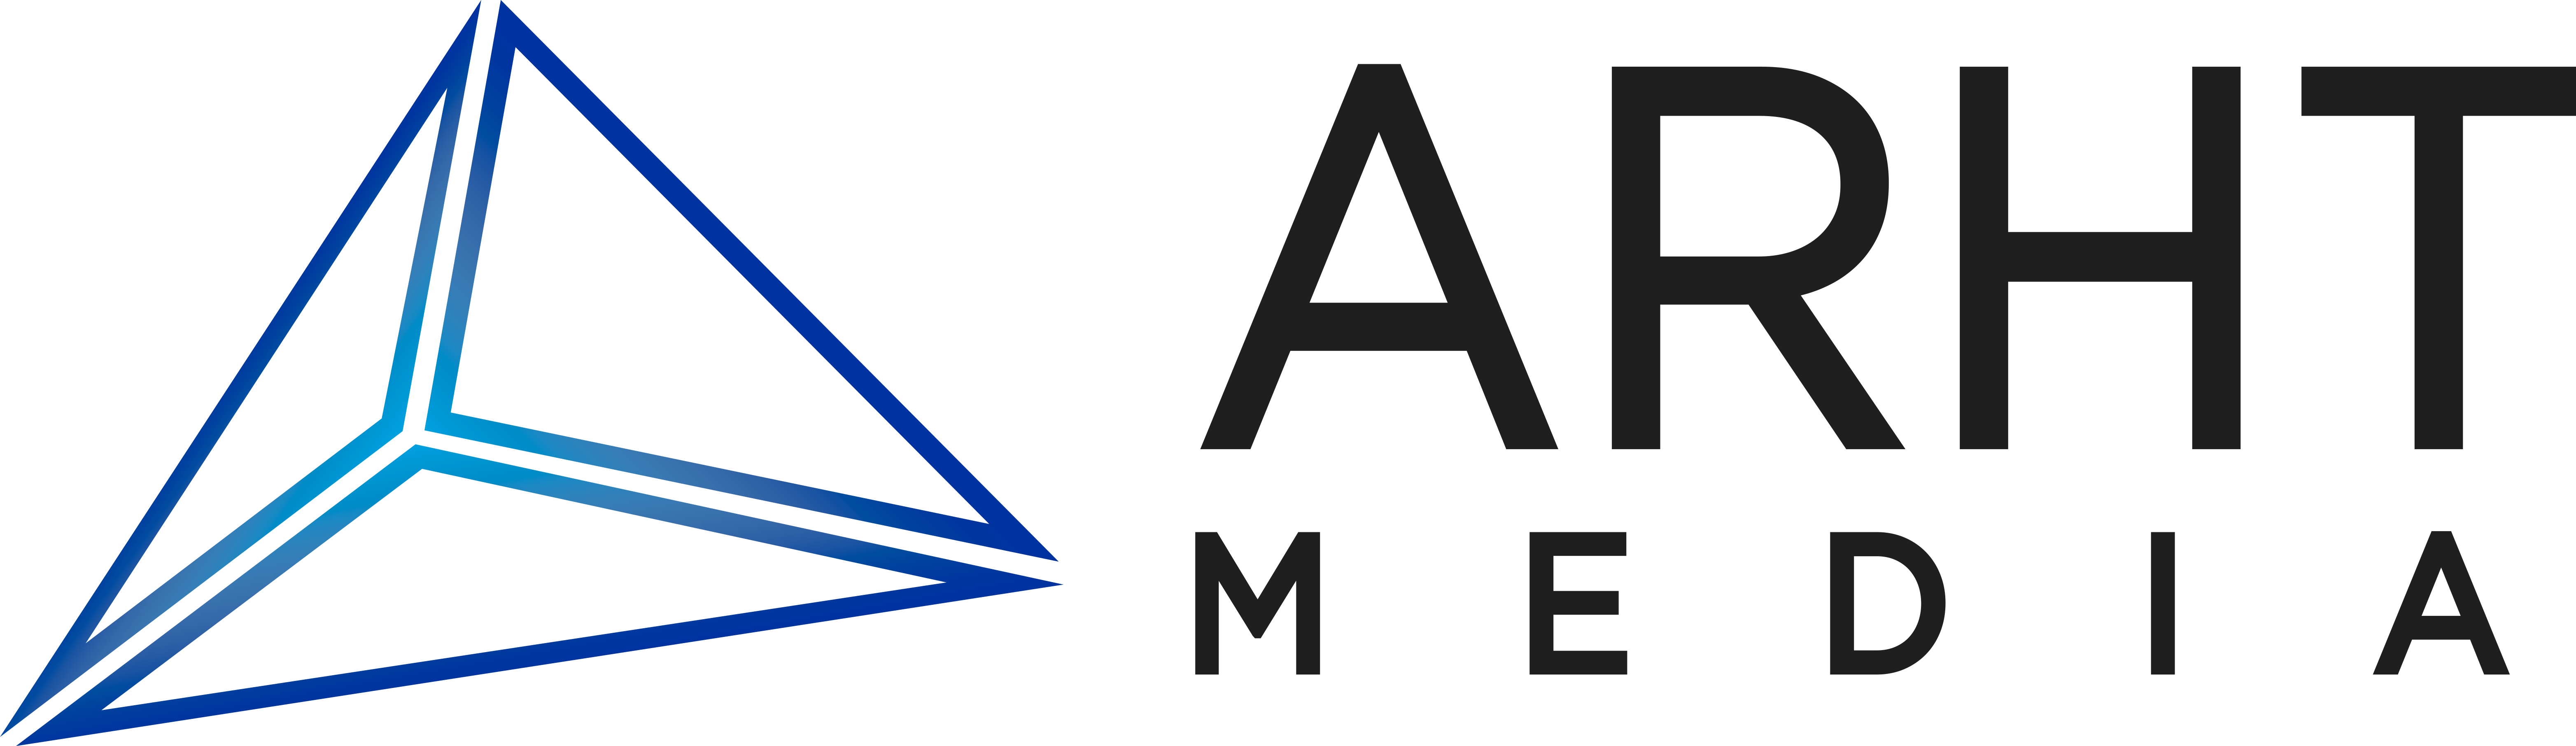 ARHT Media, MCI Group and the Blockchain Research Institute Re-Invent the Online Award Show Experience at the 2020 Enterprise Blockchain Awards